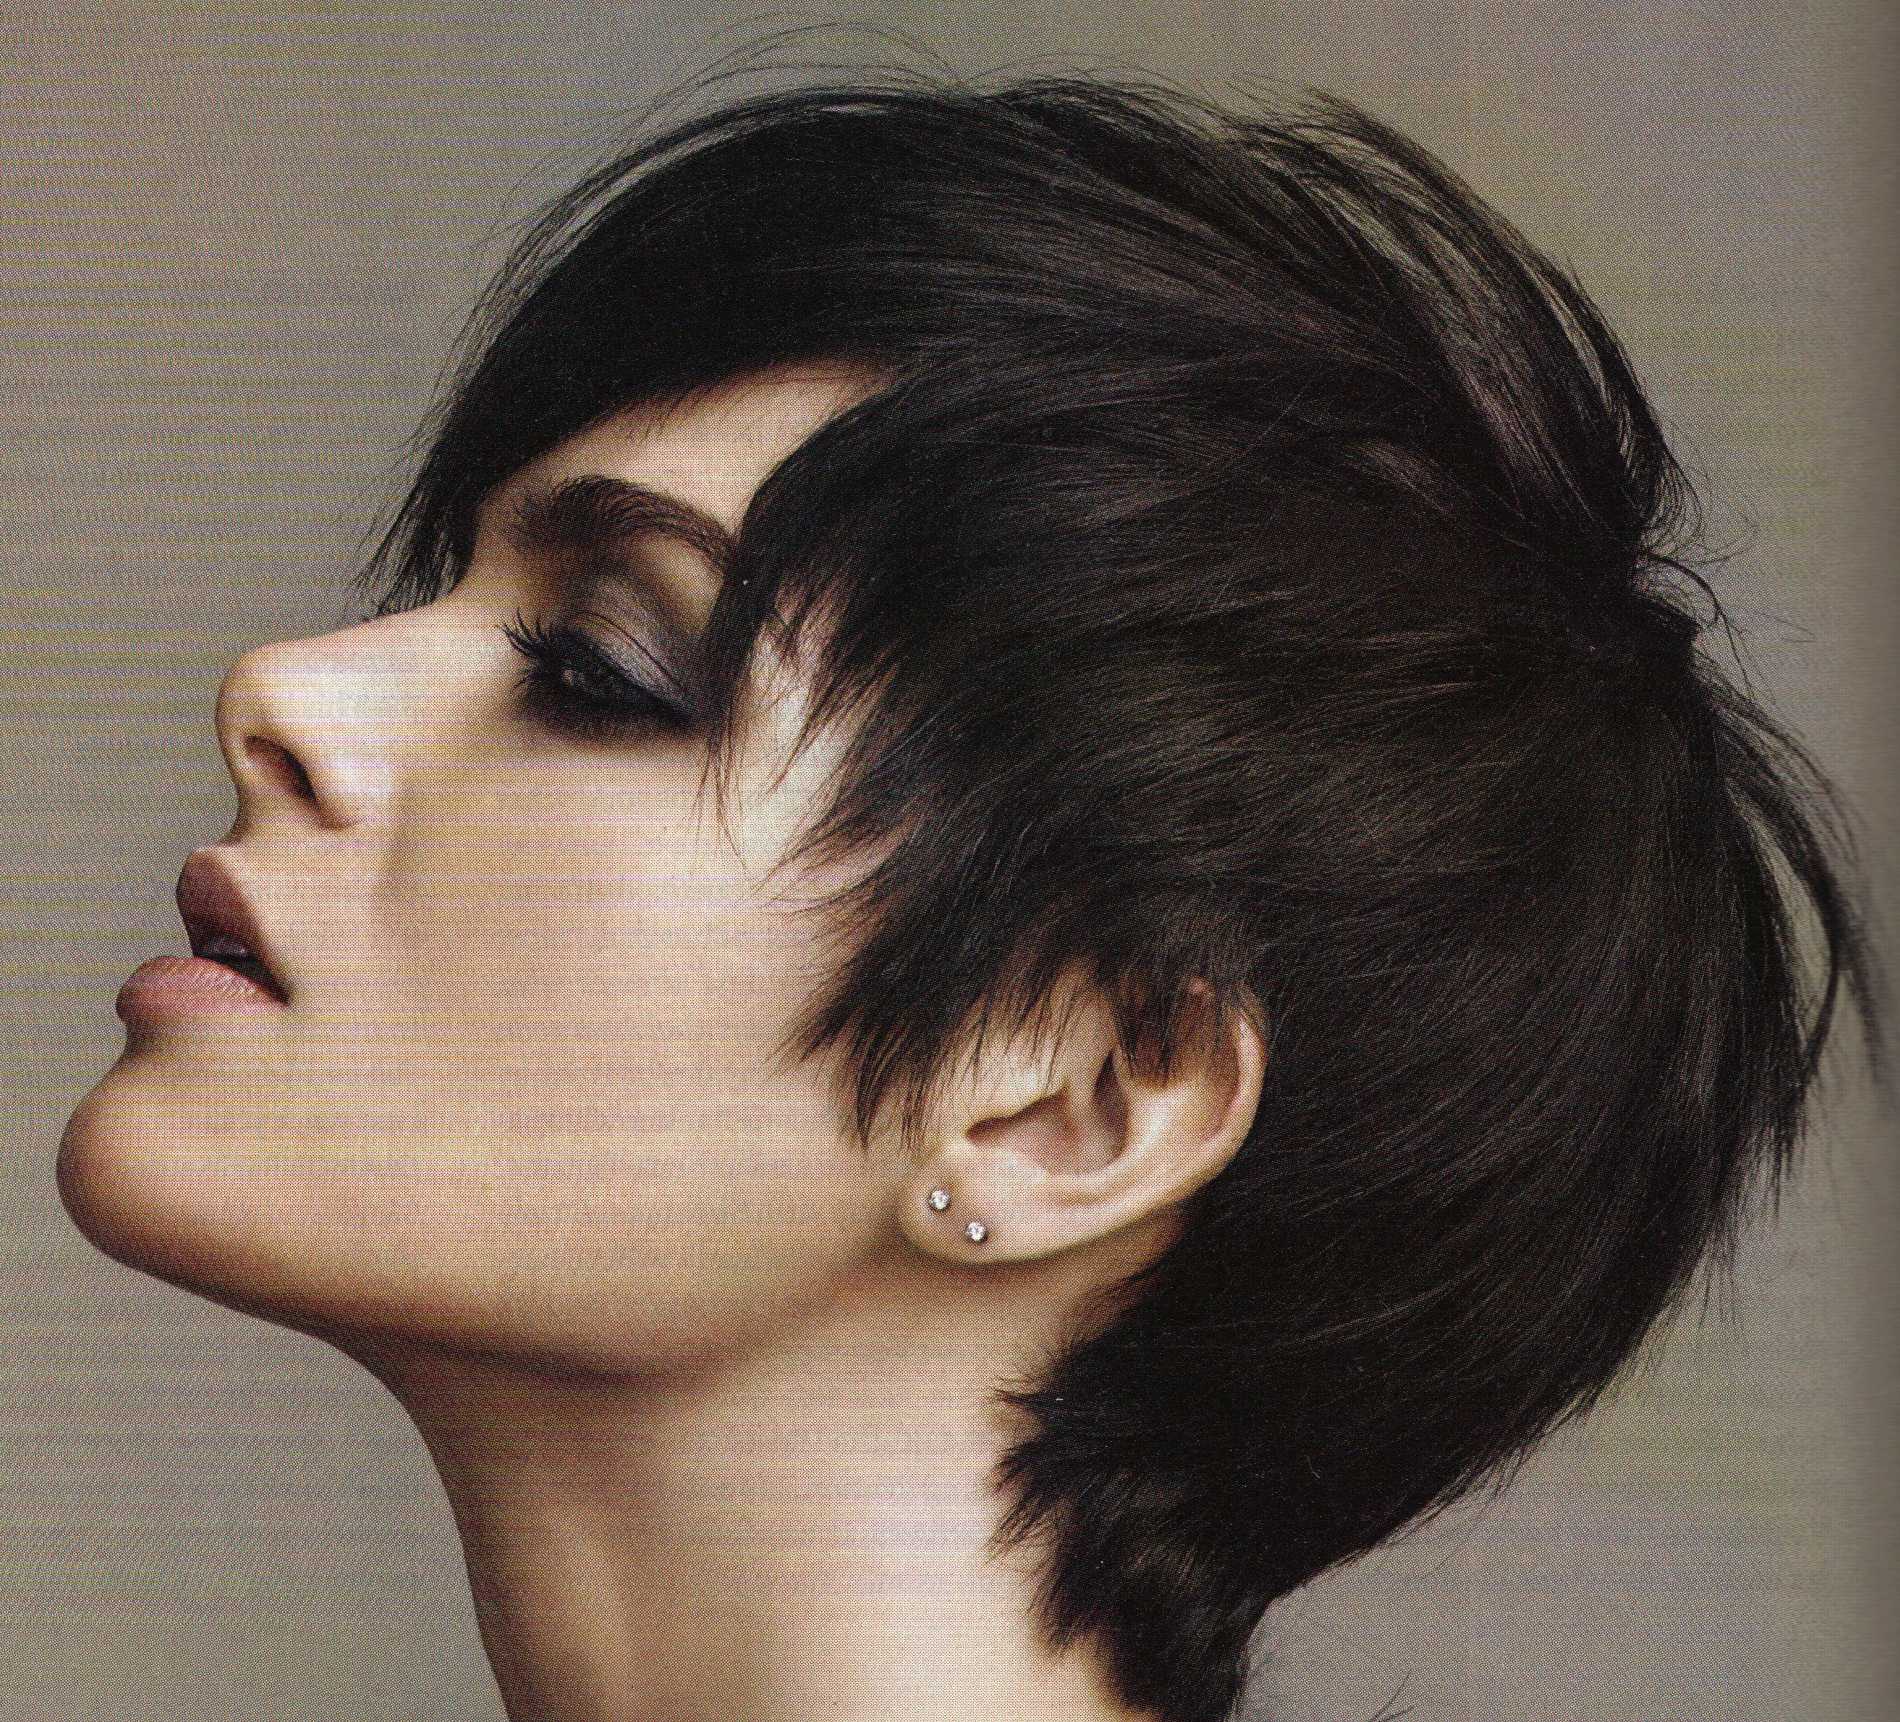 This is the cutest hair cut I've seen in a long time: